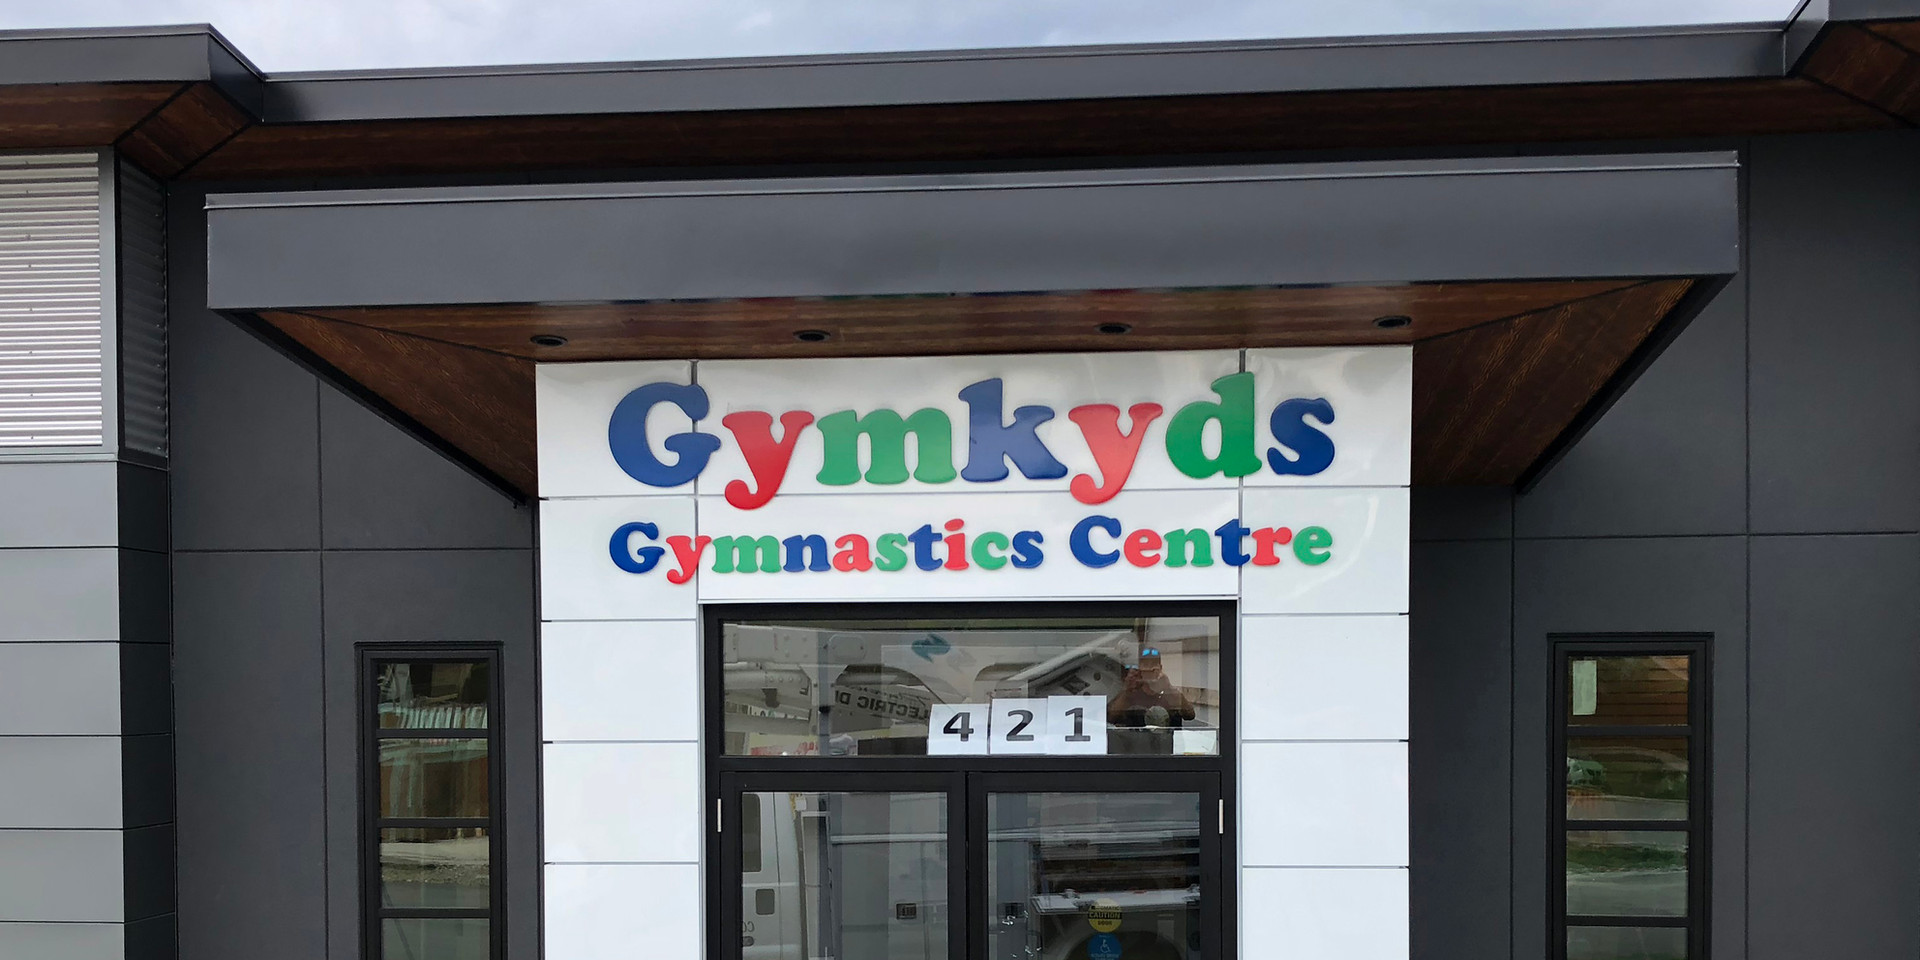 """We offer many types of custom letters and letter kits, such as this 1/4"""" thick acrylic lettering for Gymkids Gymnastics Centre. We also offer on-site installation. Alternative materials we can supply include PVC, wood, aluminum and more."""